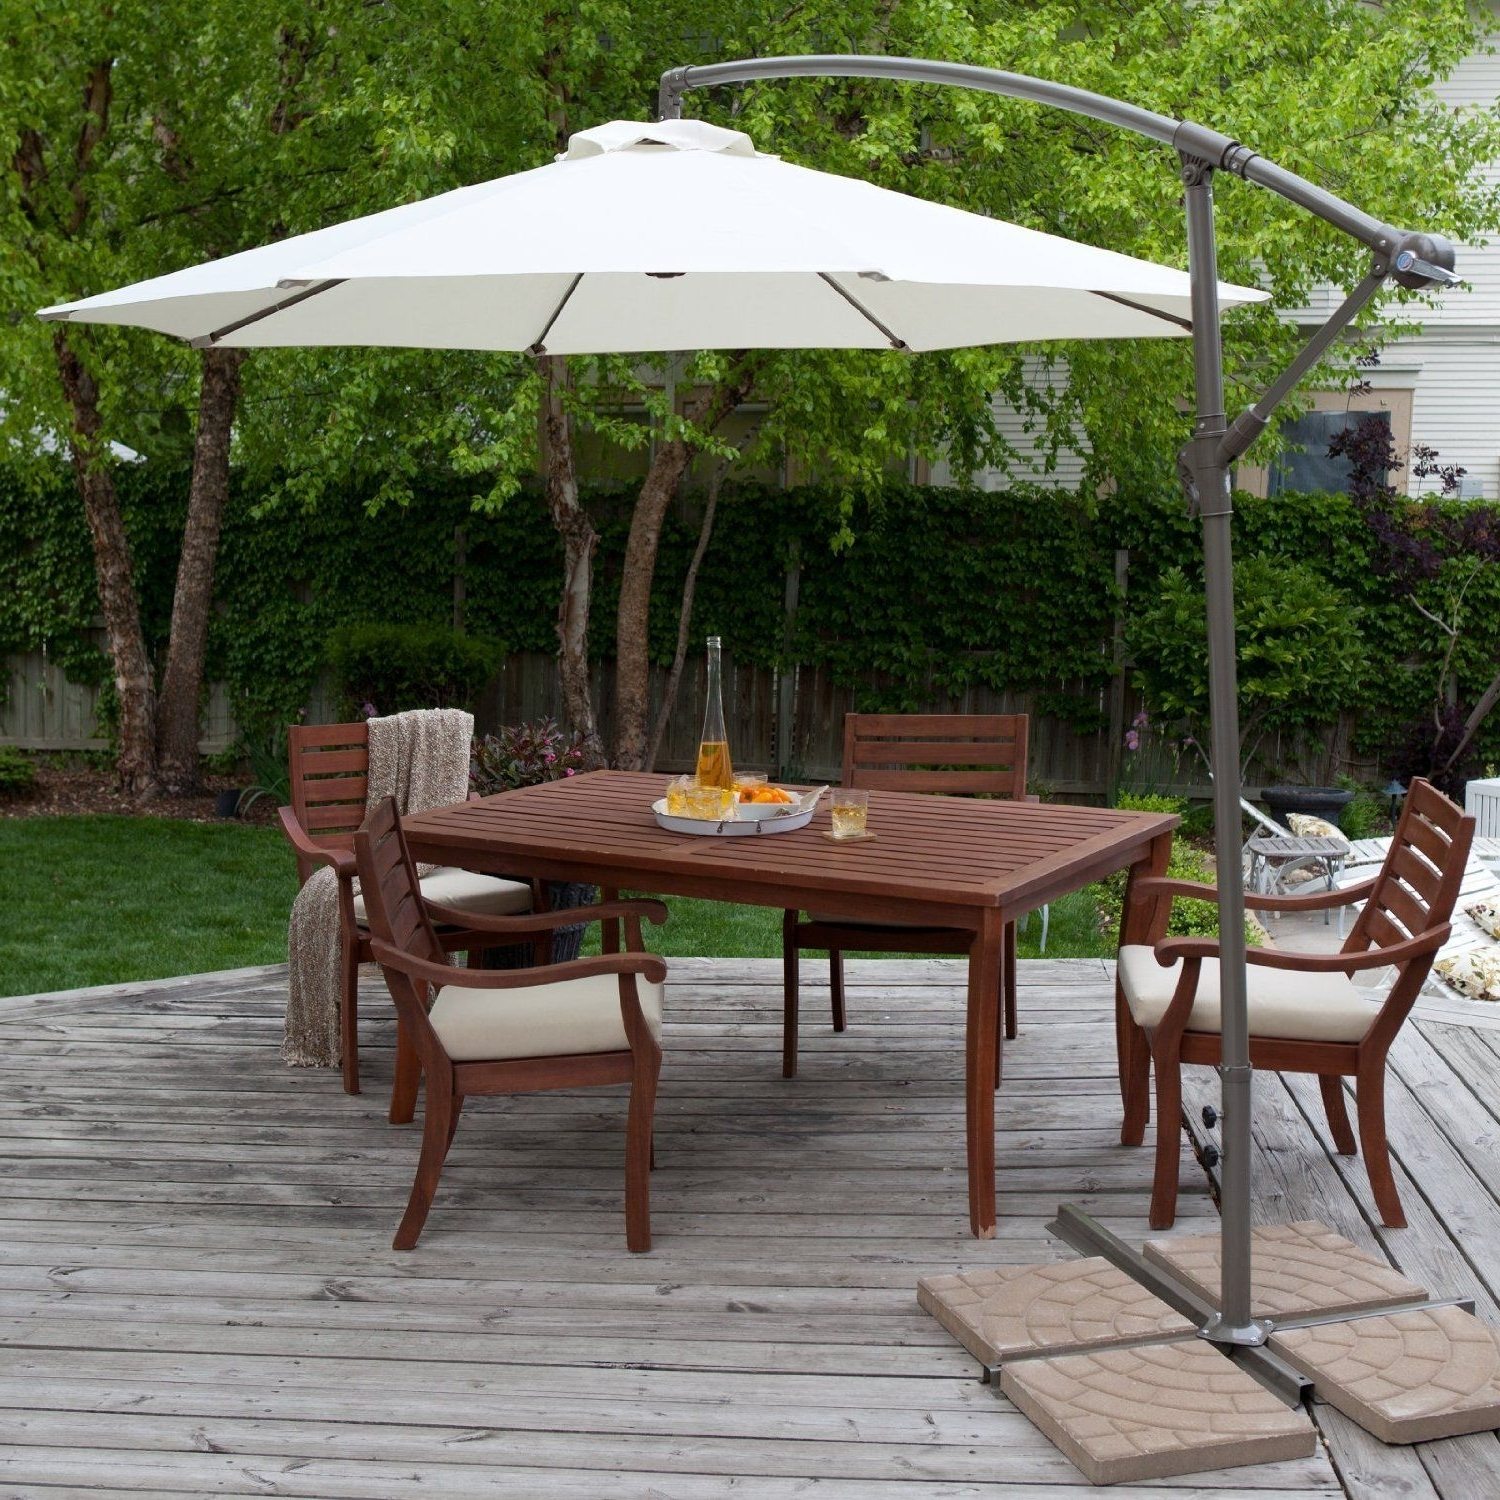 Favorite Patio Umbrellas For Tables Pertaining To Large Patio Umbrellas: Large Patio Umbrellas Coral Coast ~ Home (View 11 of 20)